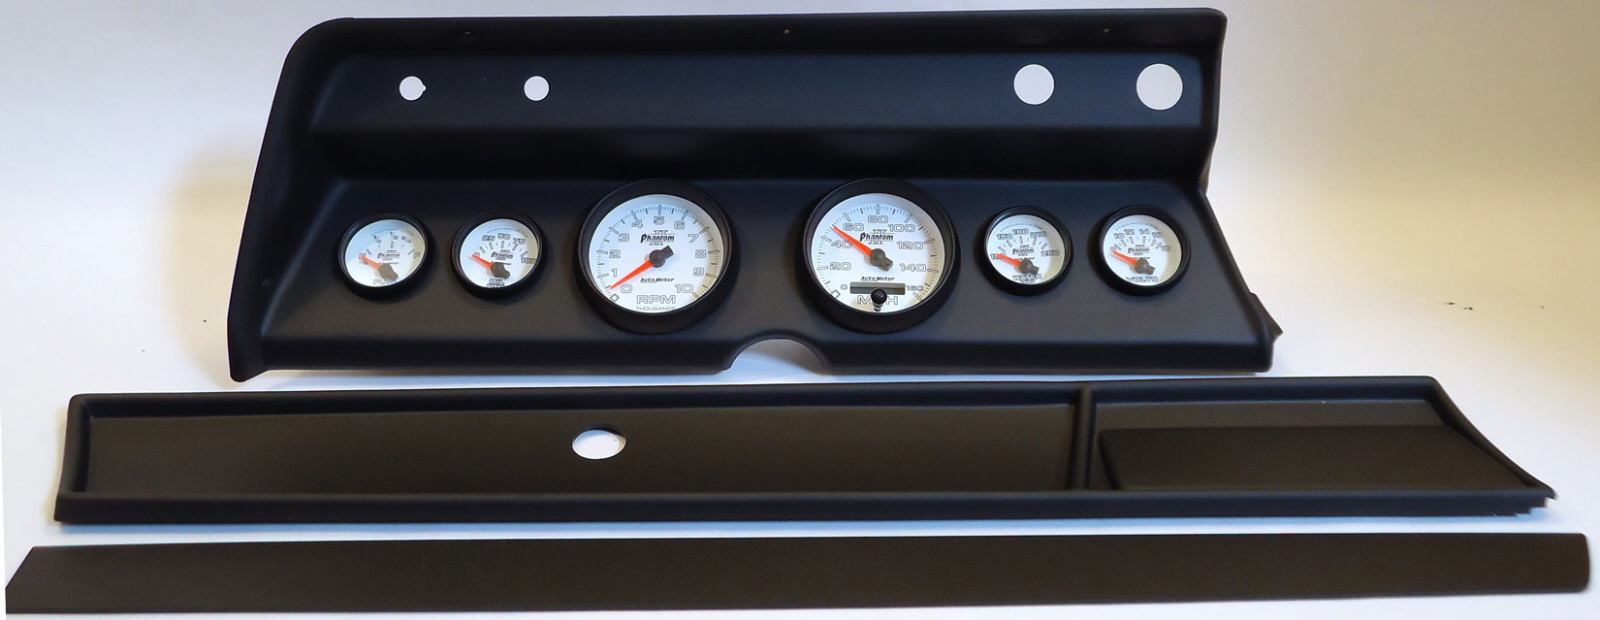 66 Chevelle Dash Carrier Panel With Auto Meter Sport Comp